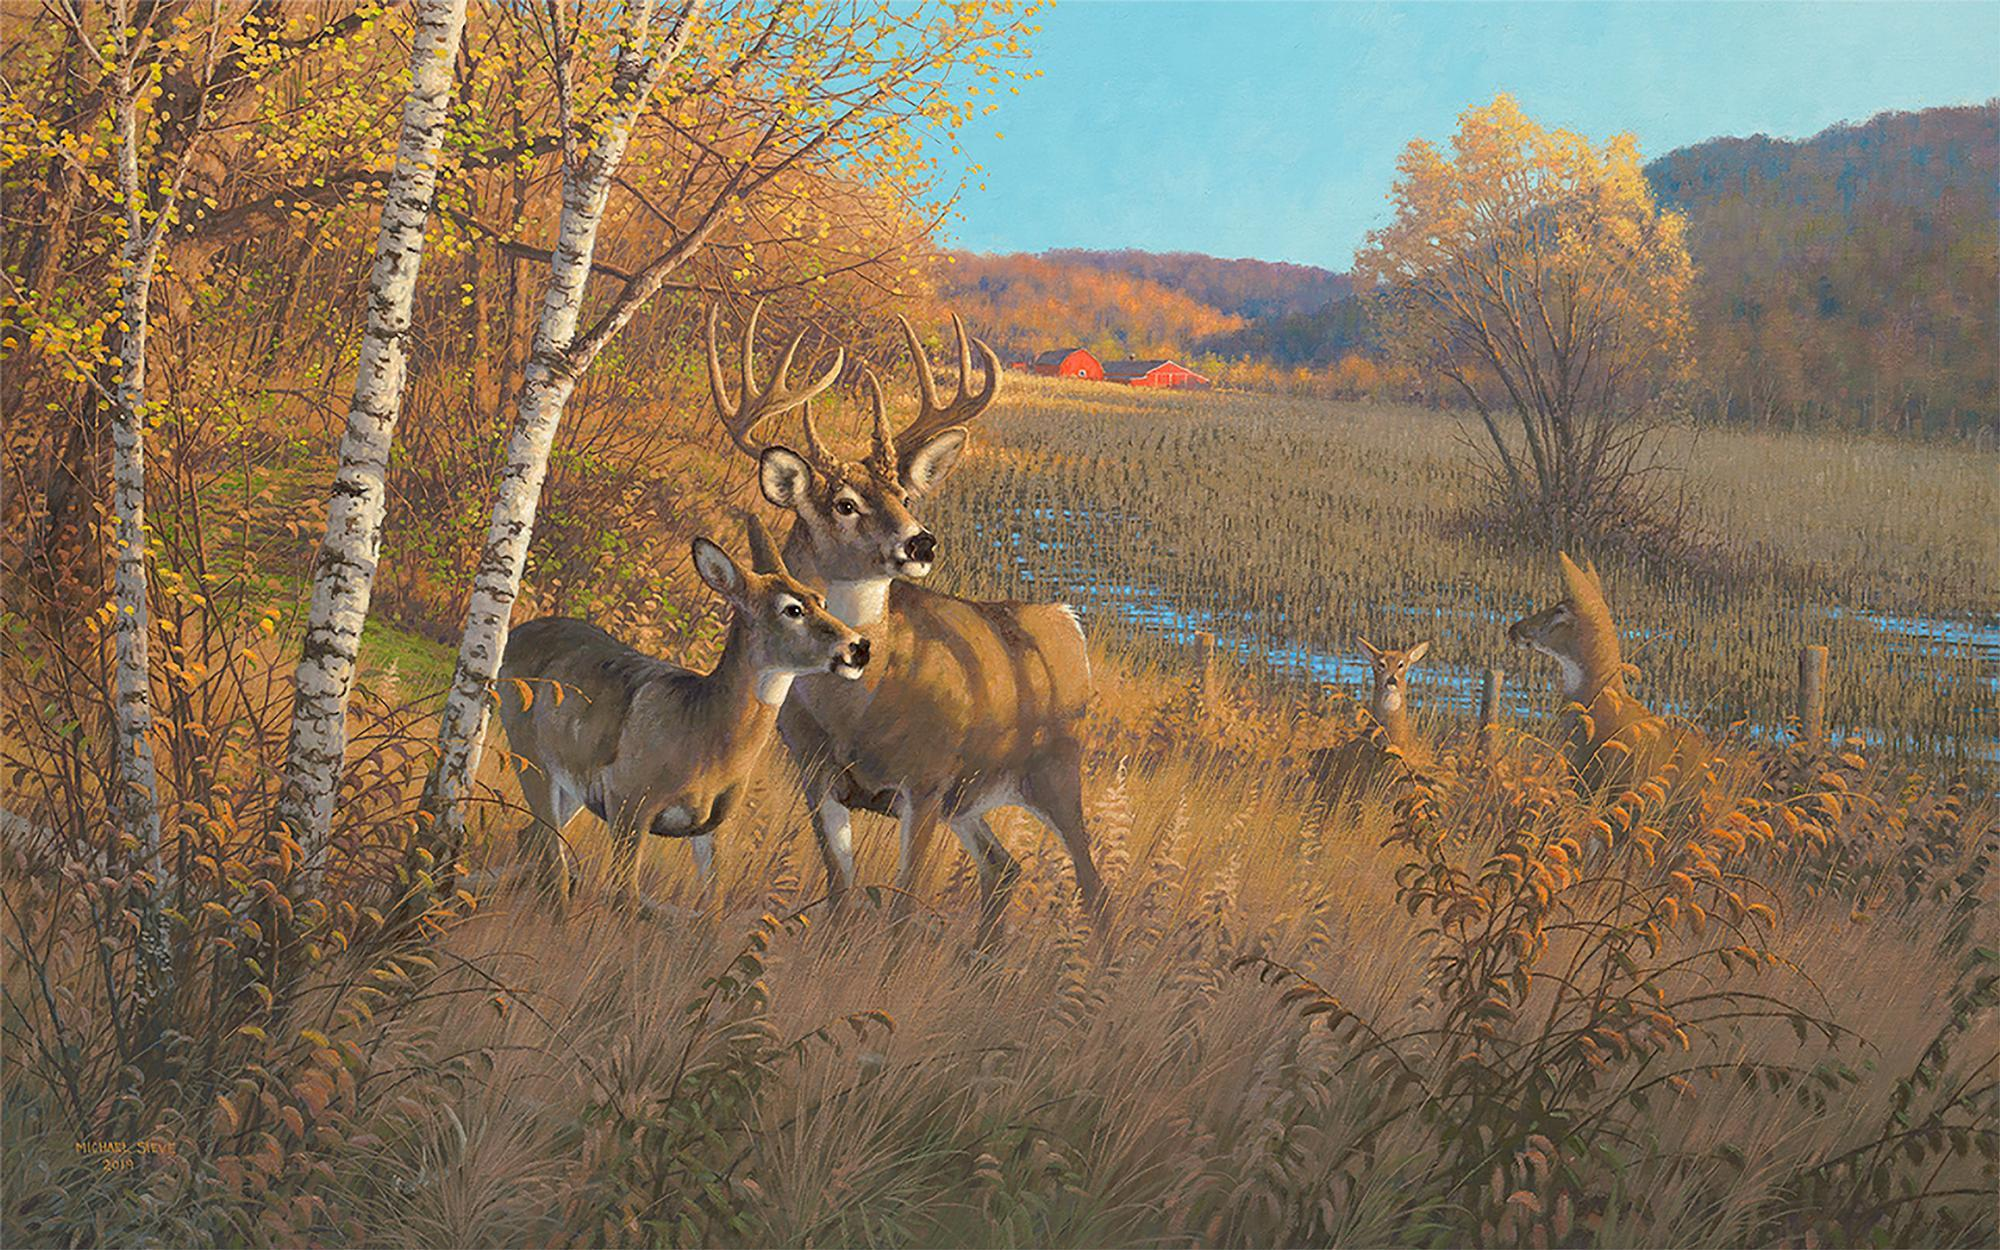 Driftless Country—Whitetail Deer.